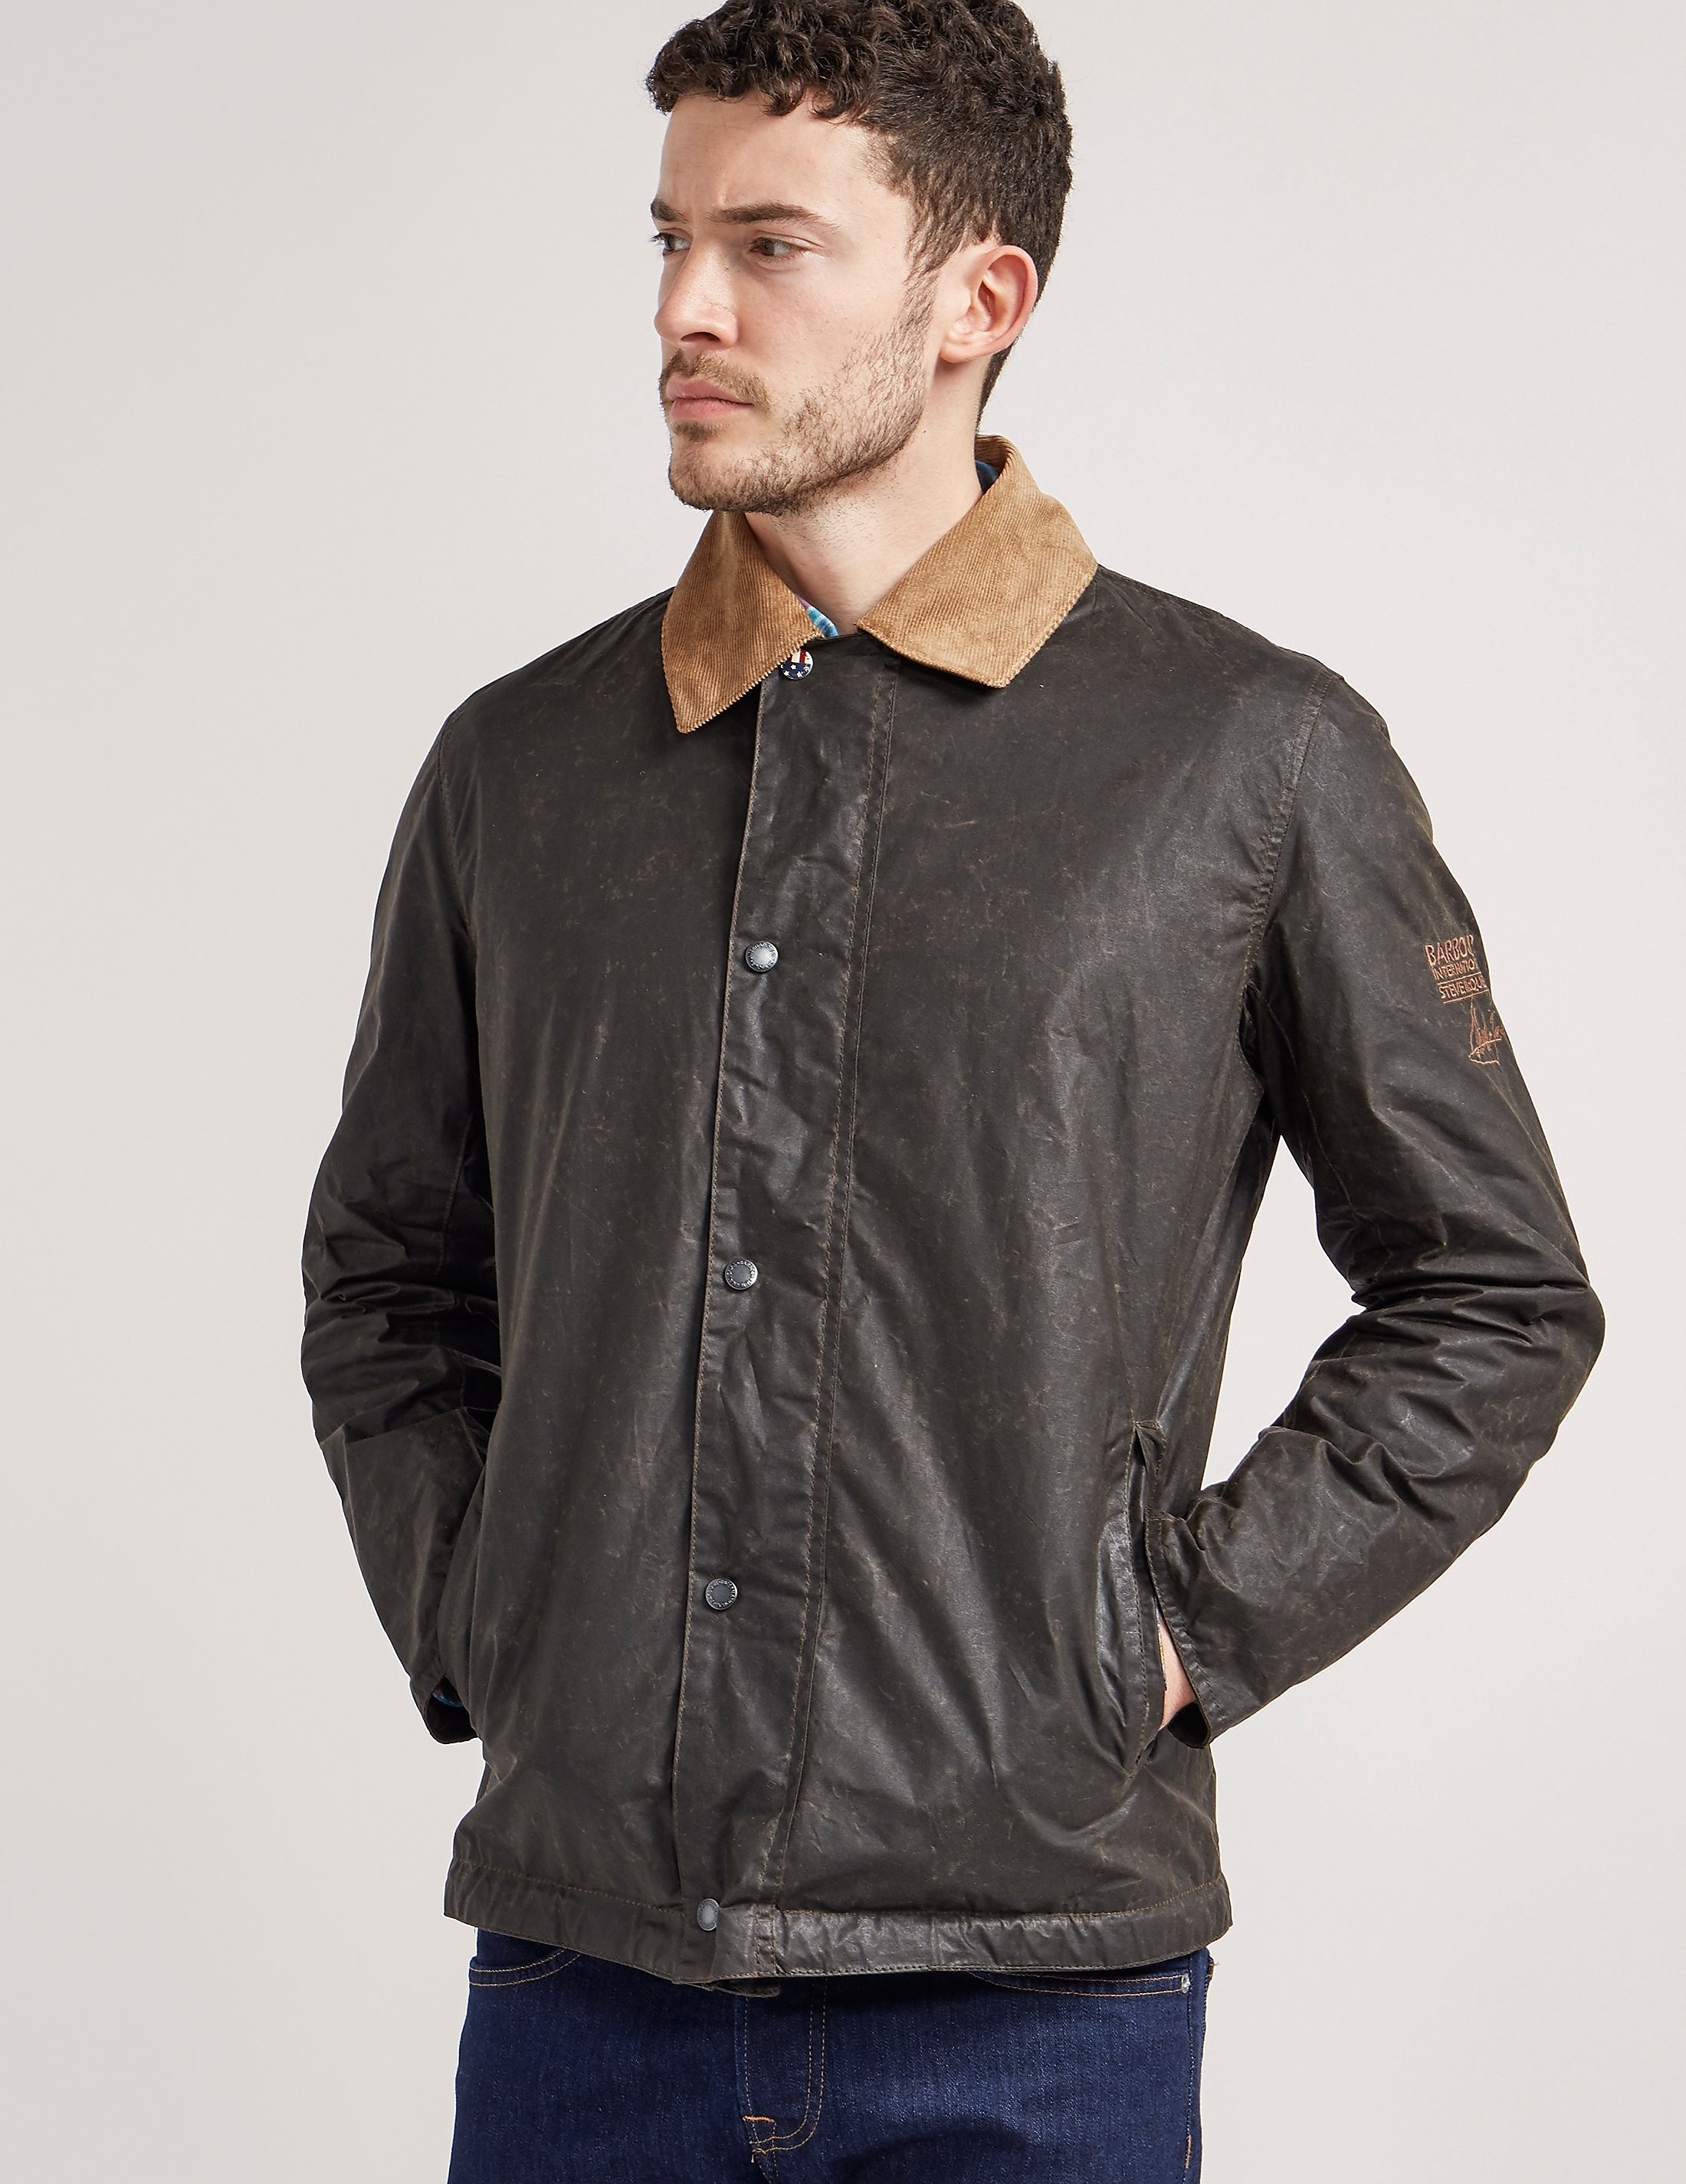 Barbour International Steve McQueen Tread Wax Jacket